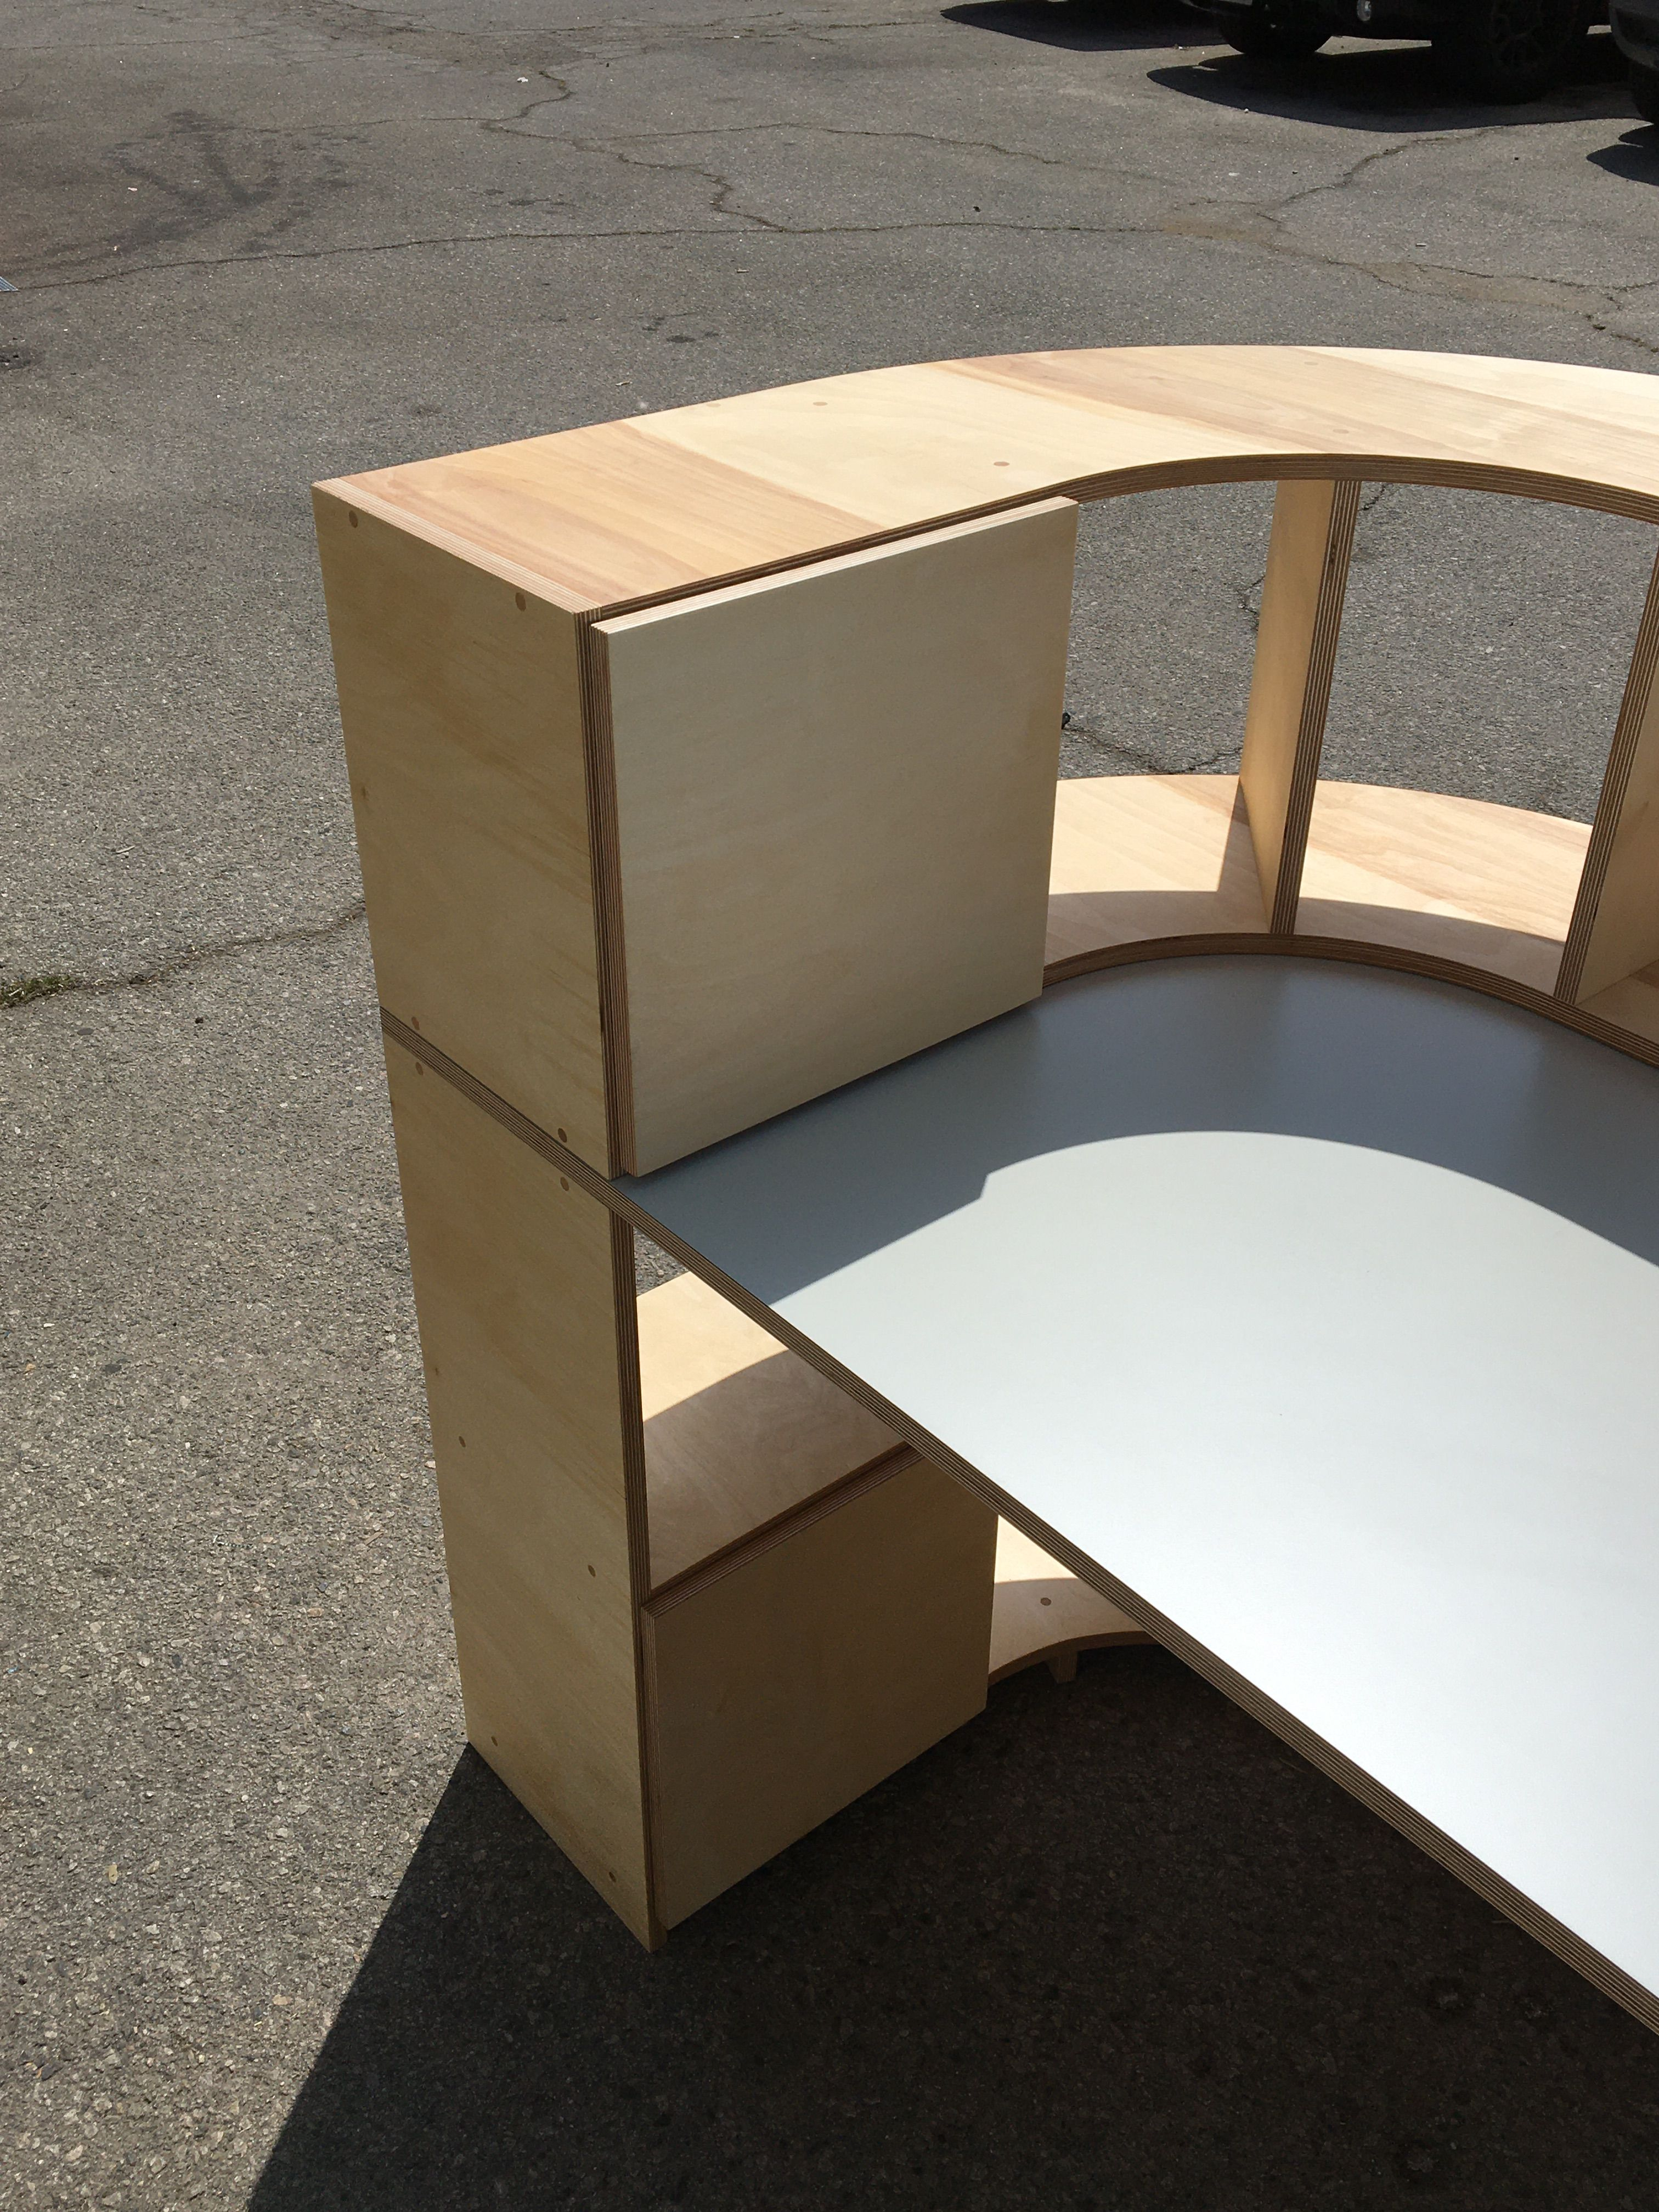 Executive Desk - Matthew Brown Gallery product image 3